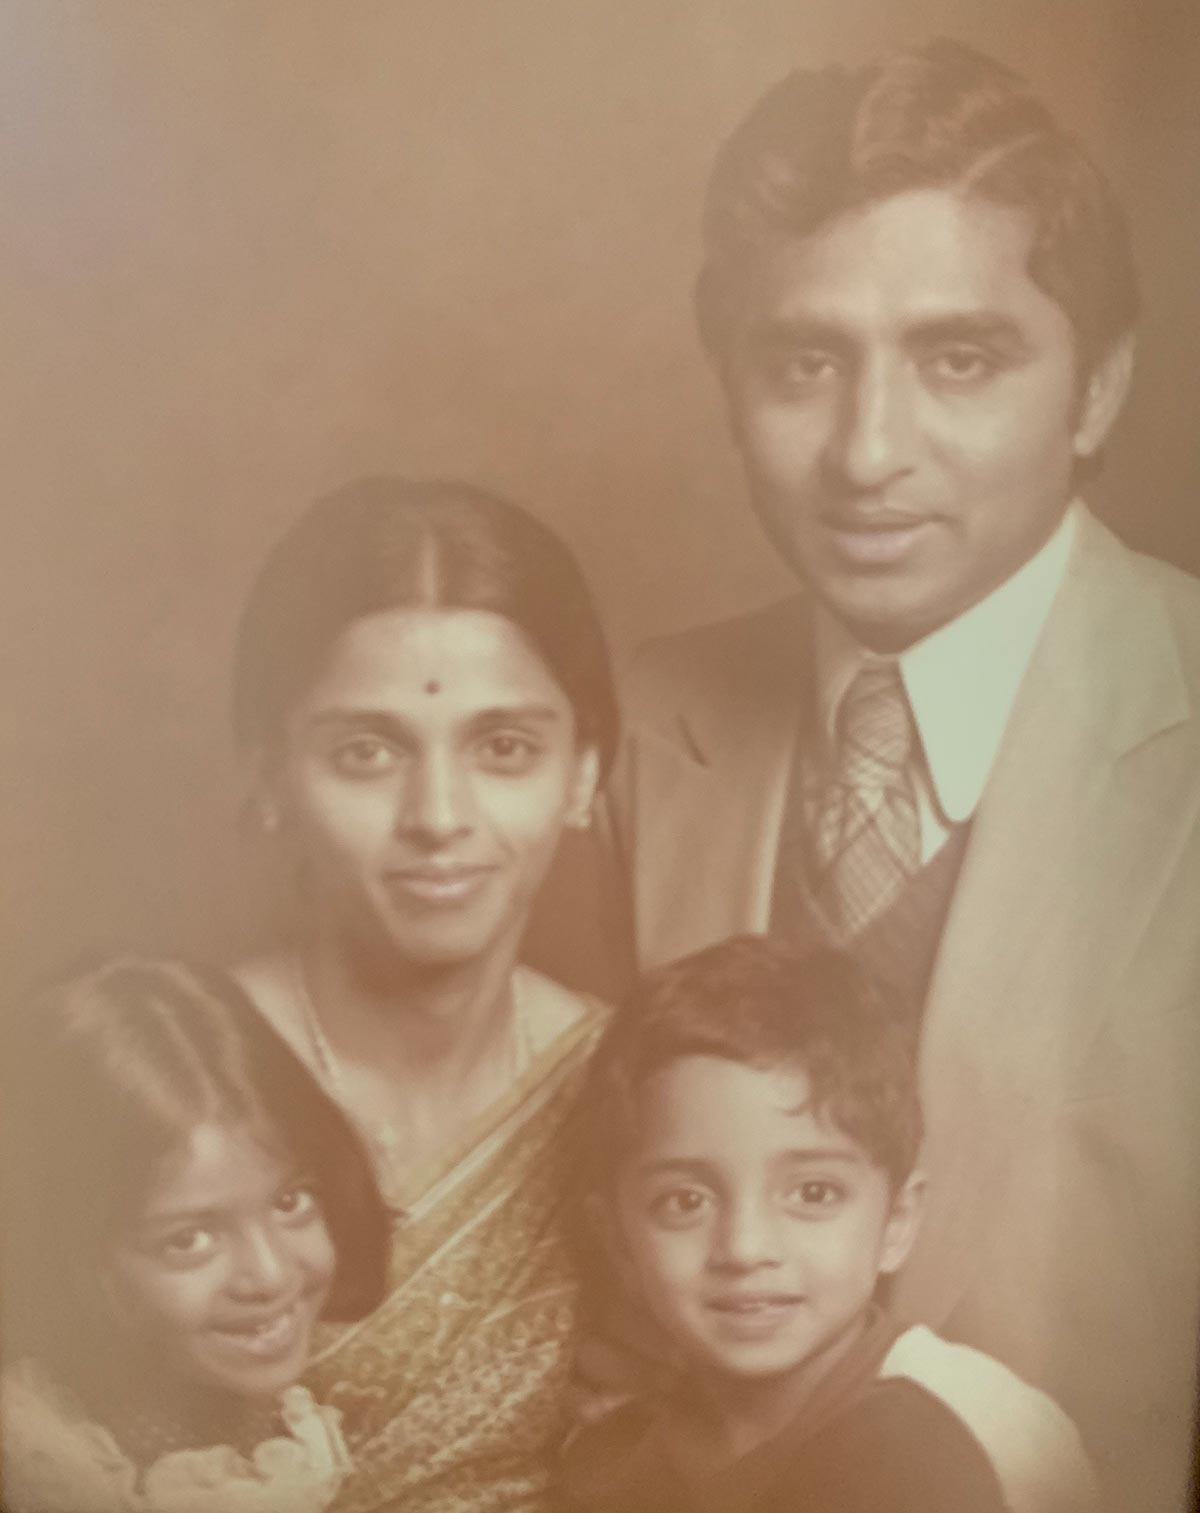 A sepia-tone photograph of Vivek Murthy as a child with his family.